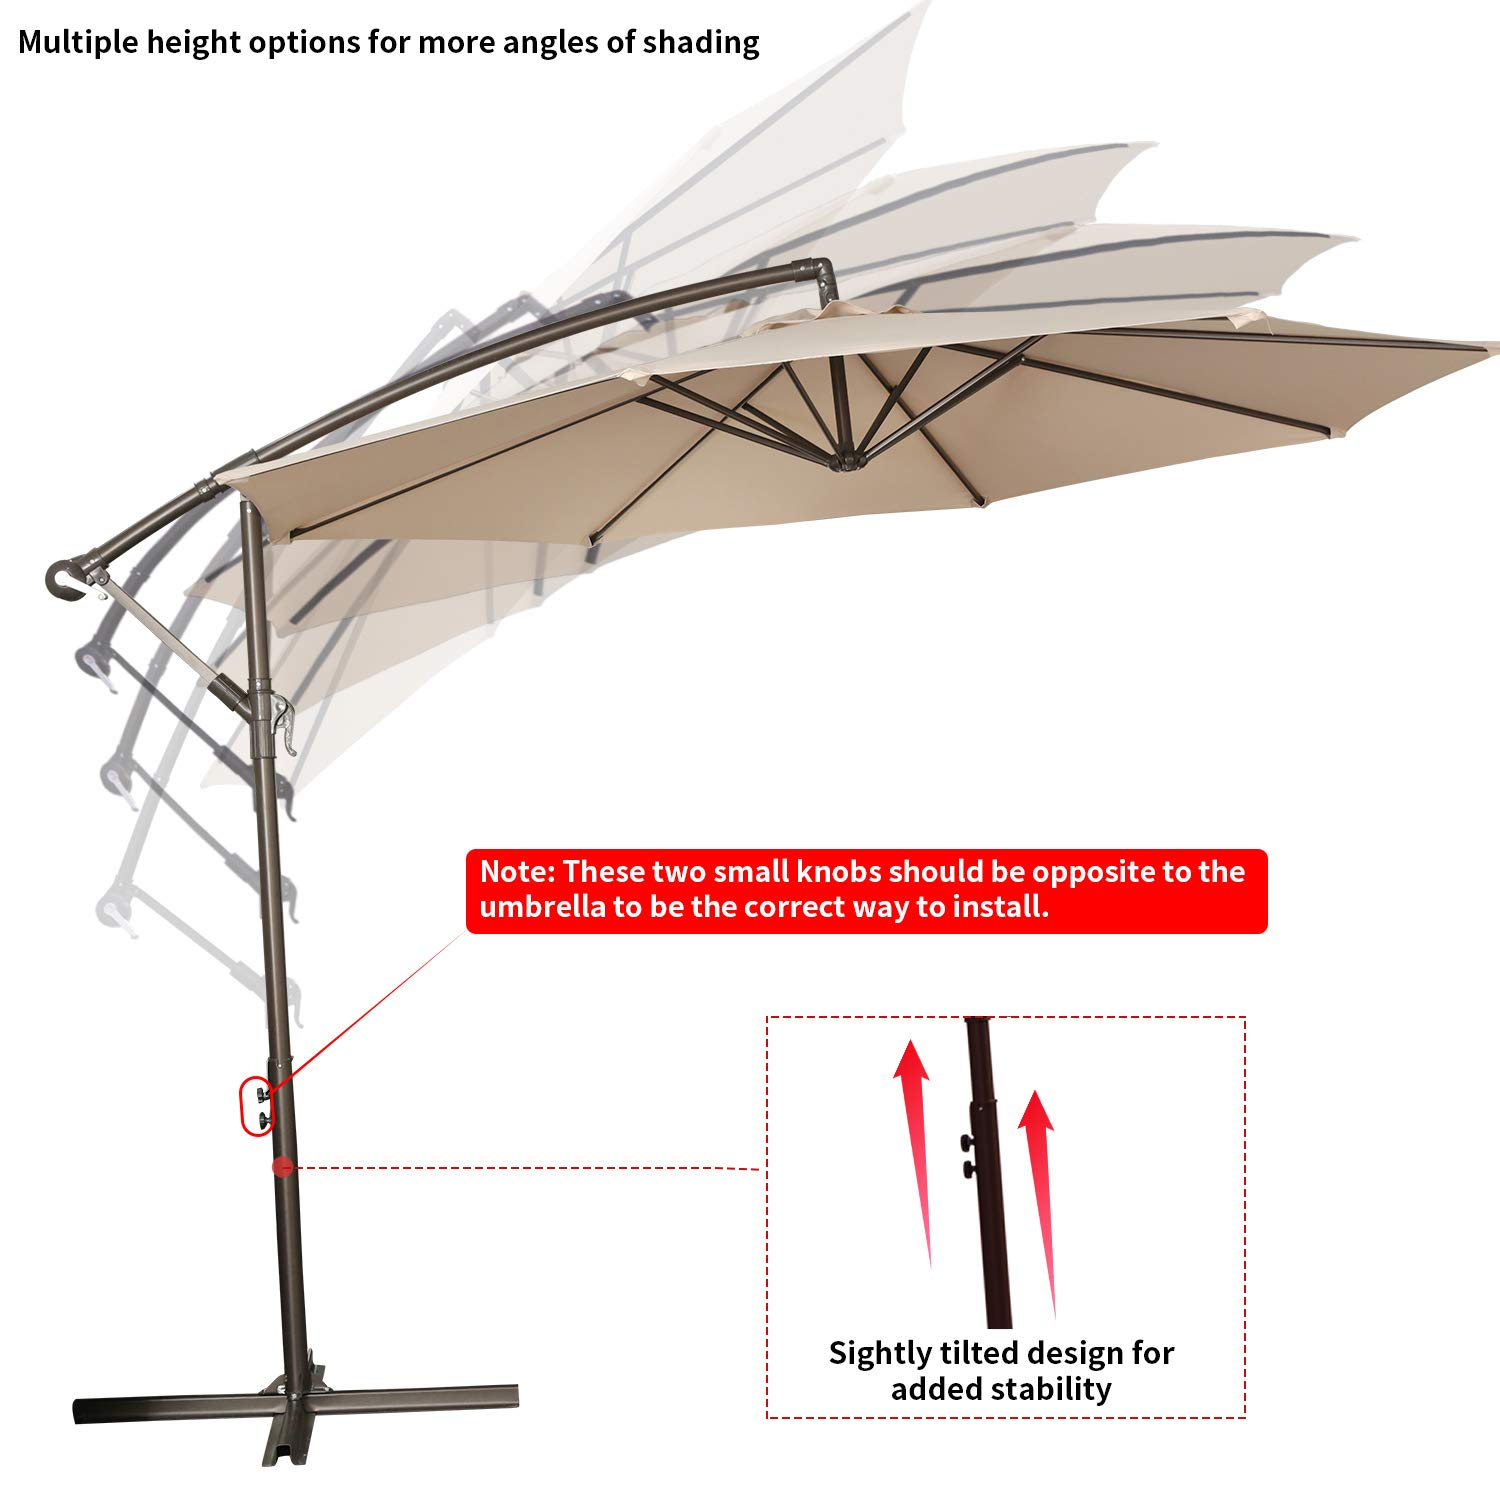 RUBEDER Offset Umbrella - 10Ft Cantilever Patio Hanging Umbrella,Outdoor Market Umbrellas with Crank Lift & Cross Base (10 Ft, Beige) by RUBEDER (Image #6)